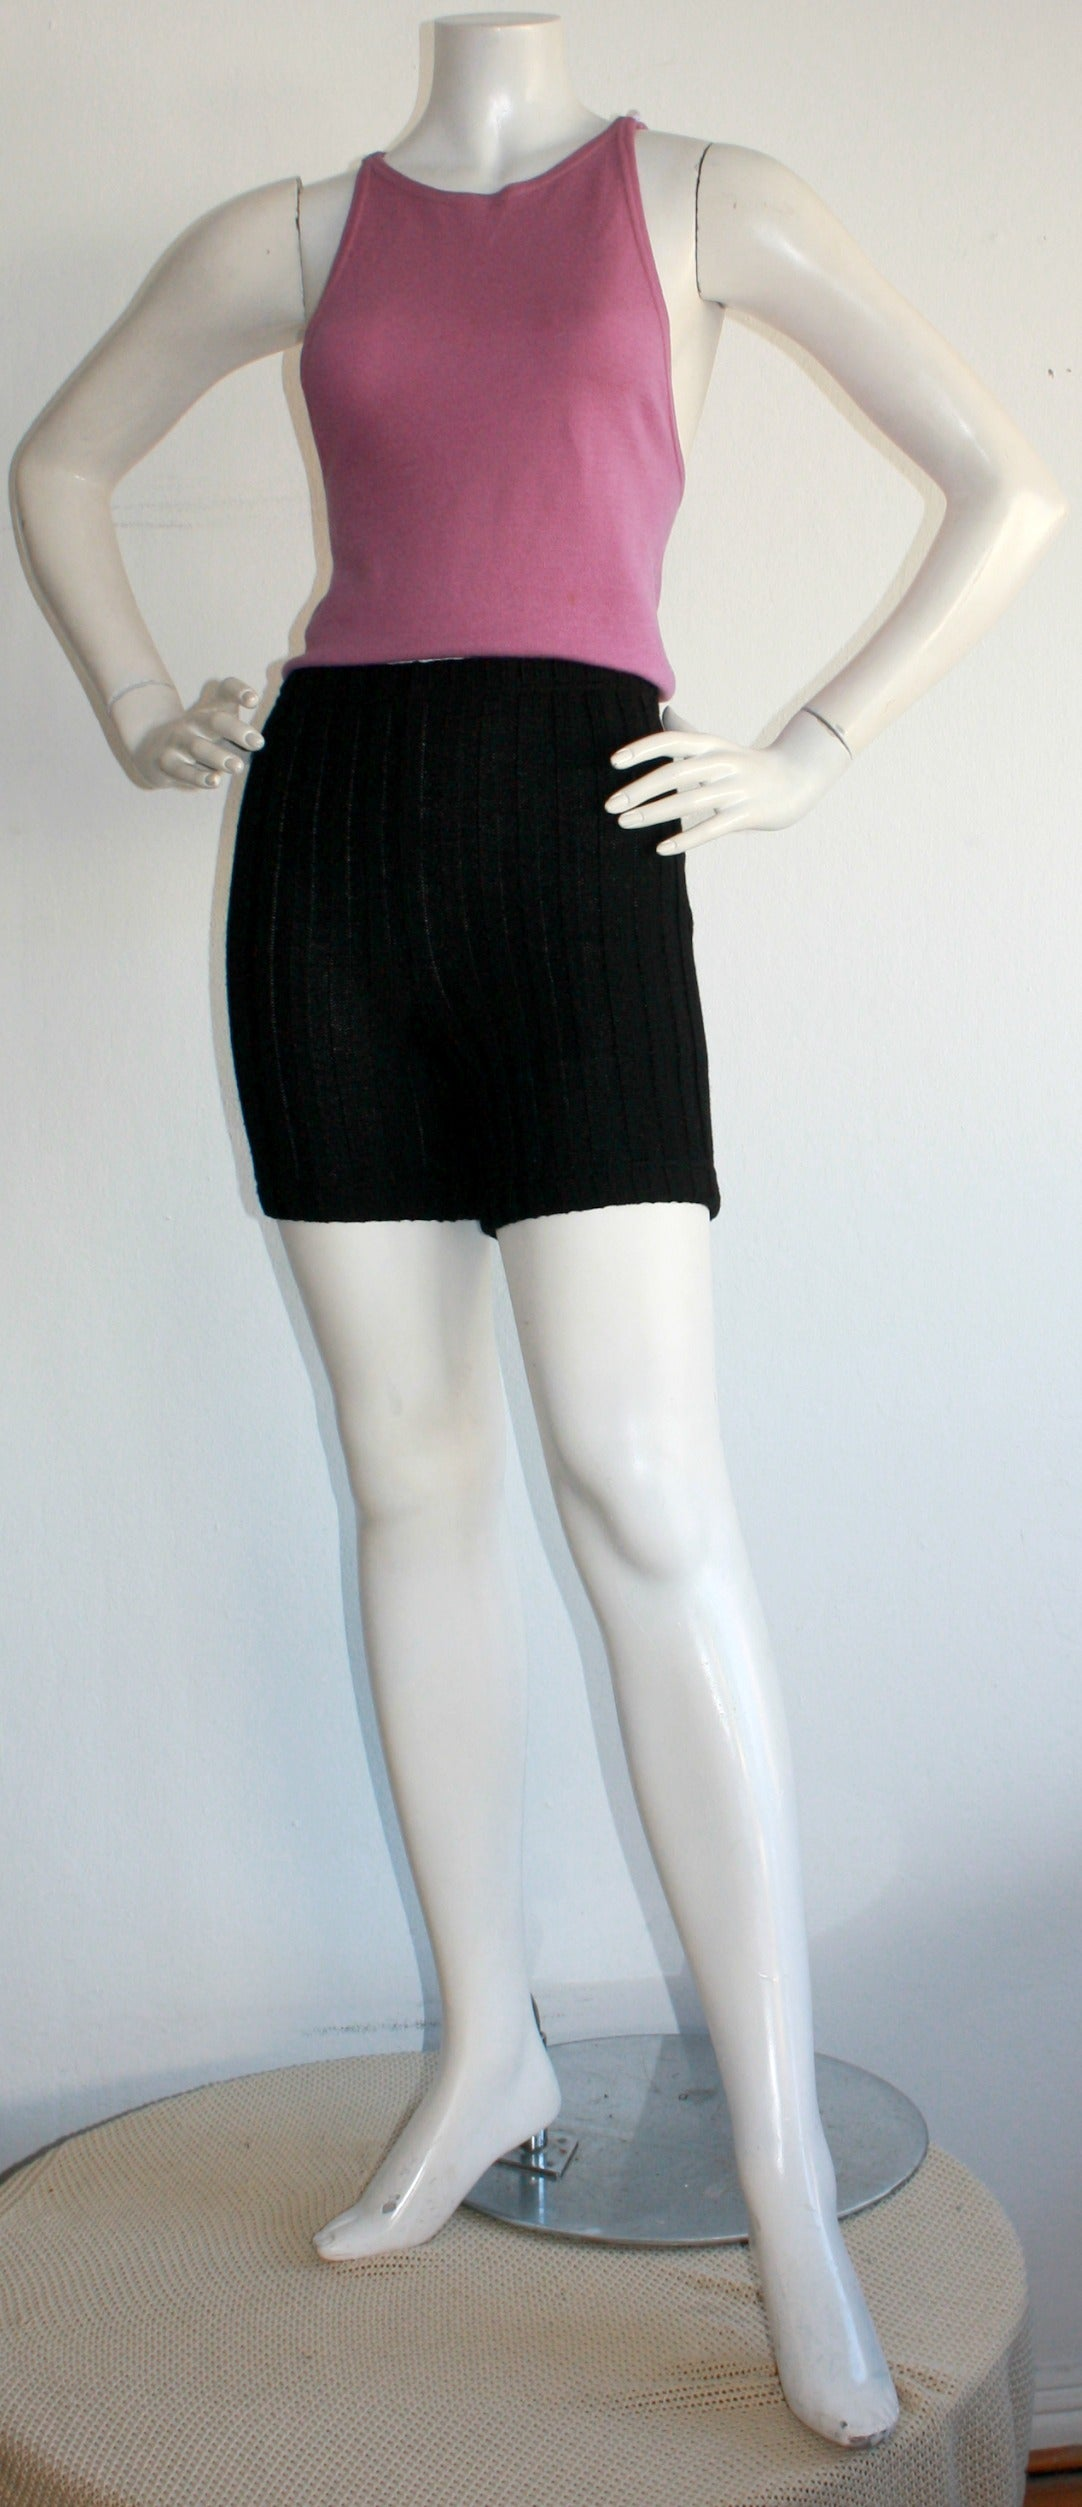 Iconic 1960s Rudi Gernreich For Harmon Knits Shorts and Top Ensemble 5